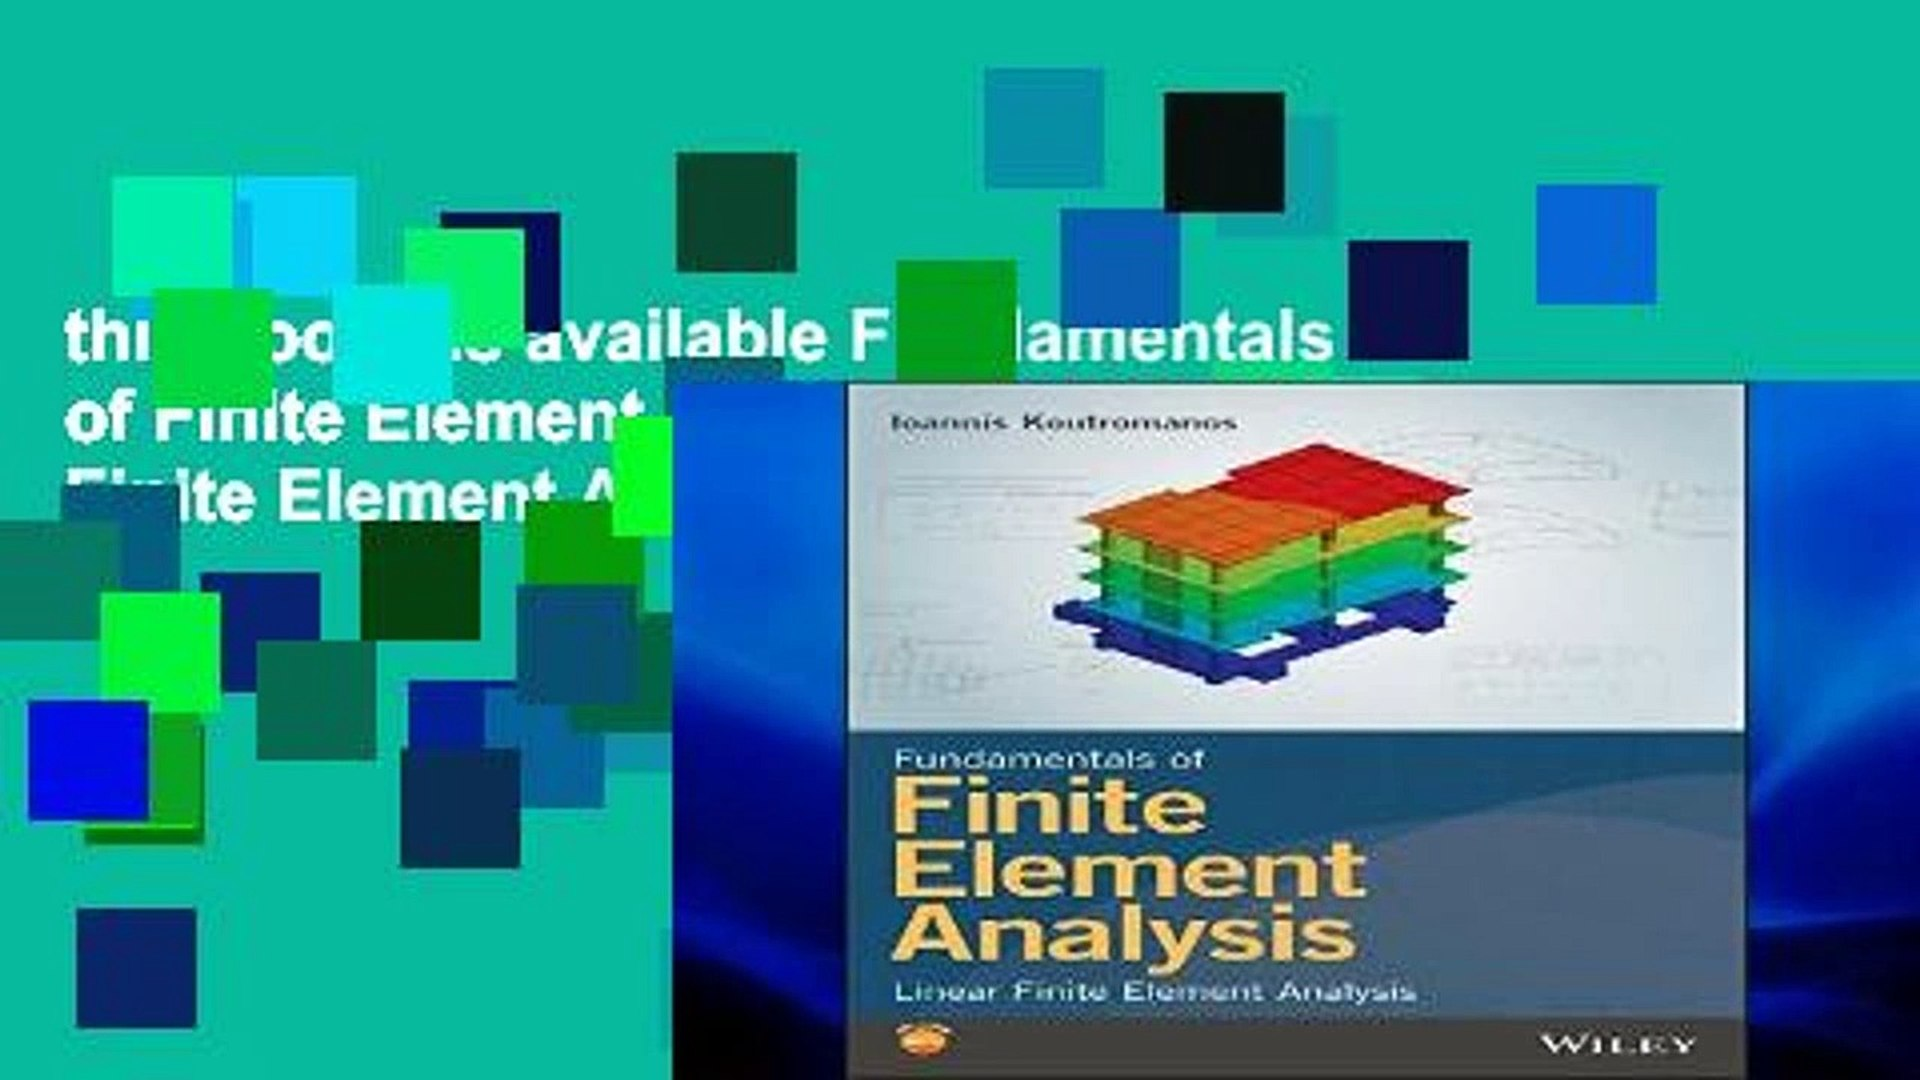 this books is available Fundamentals of Finite Element Analysis: Linear  Finite Element Analysis